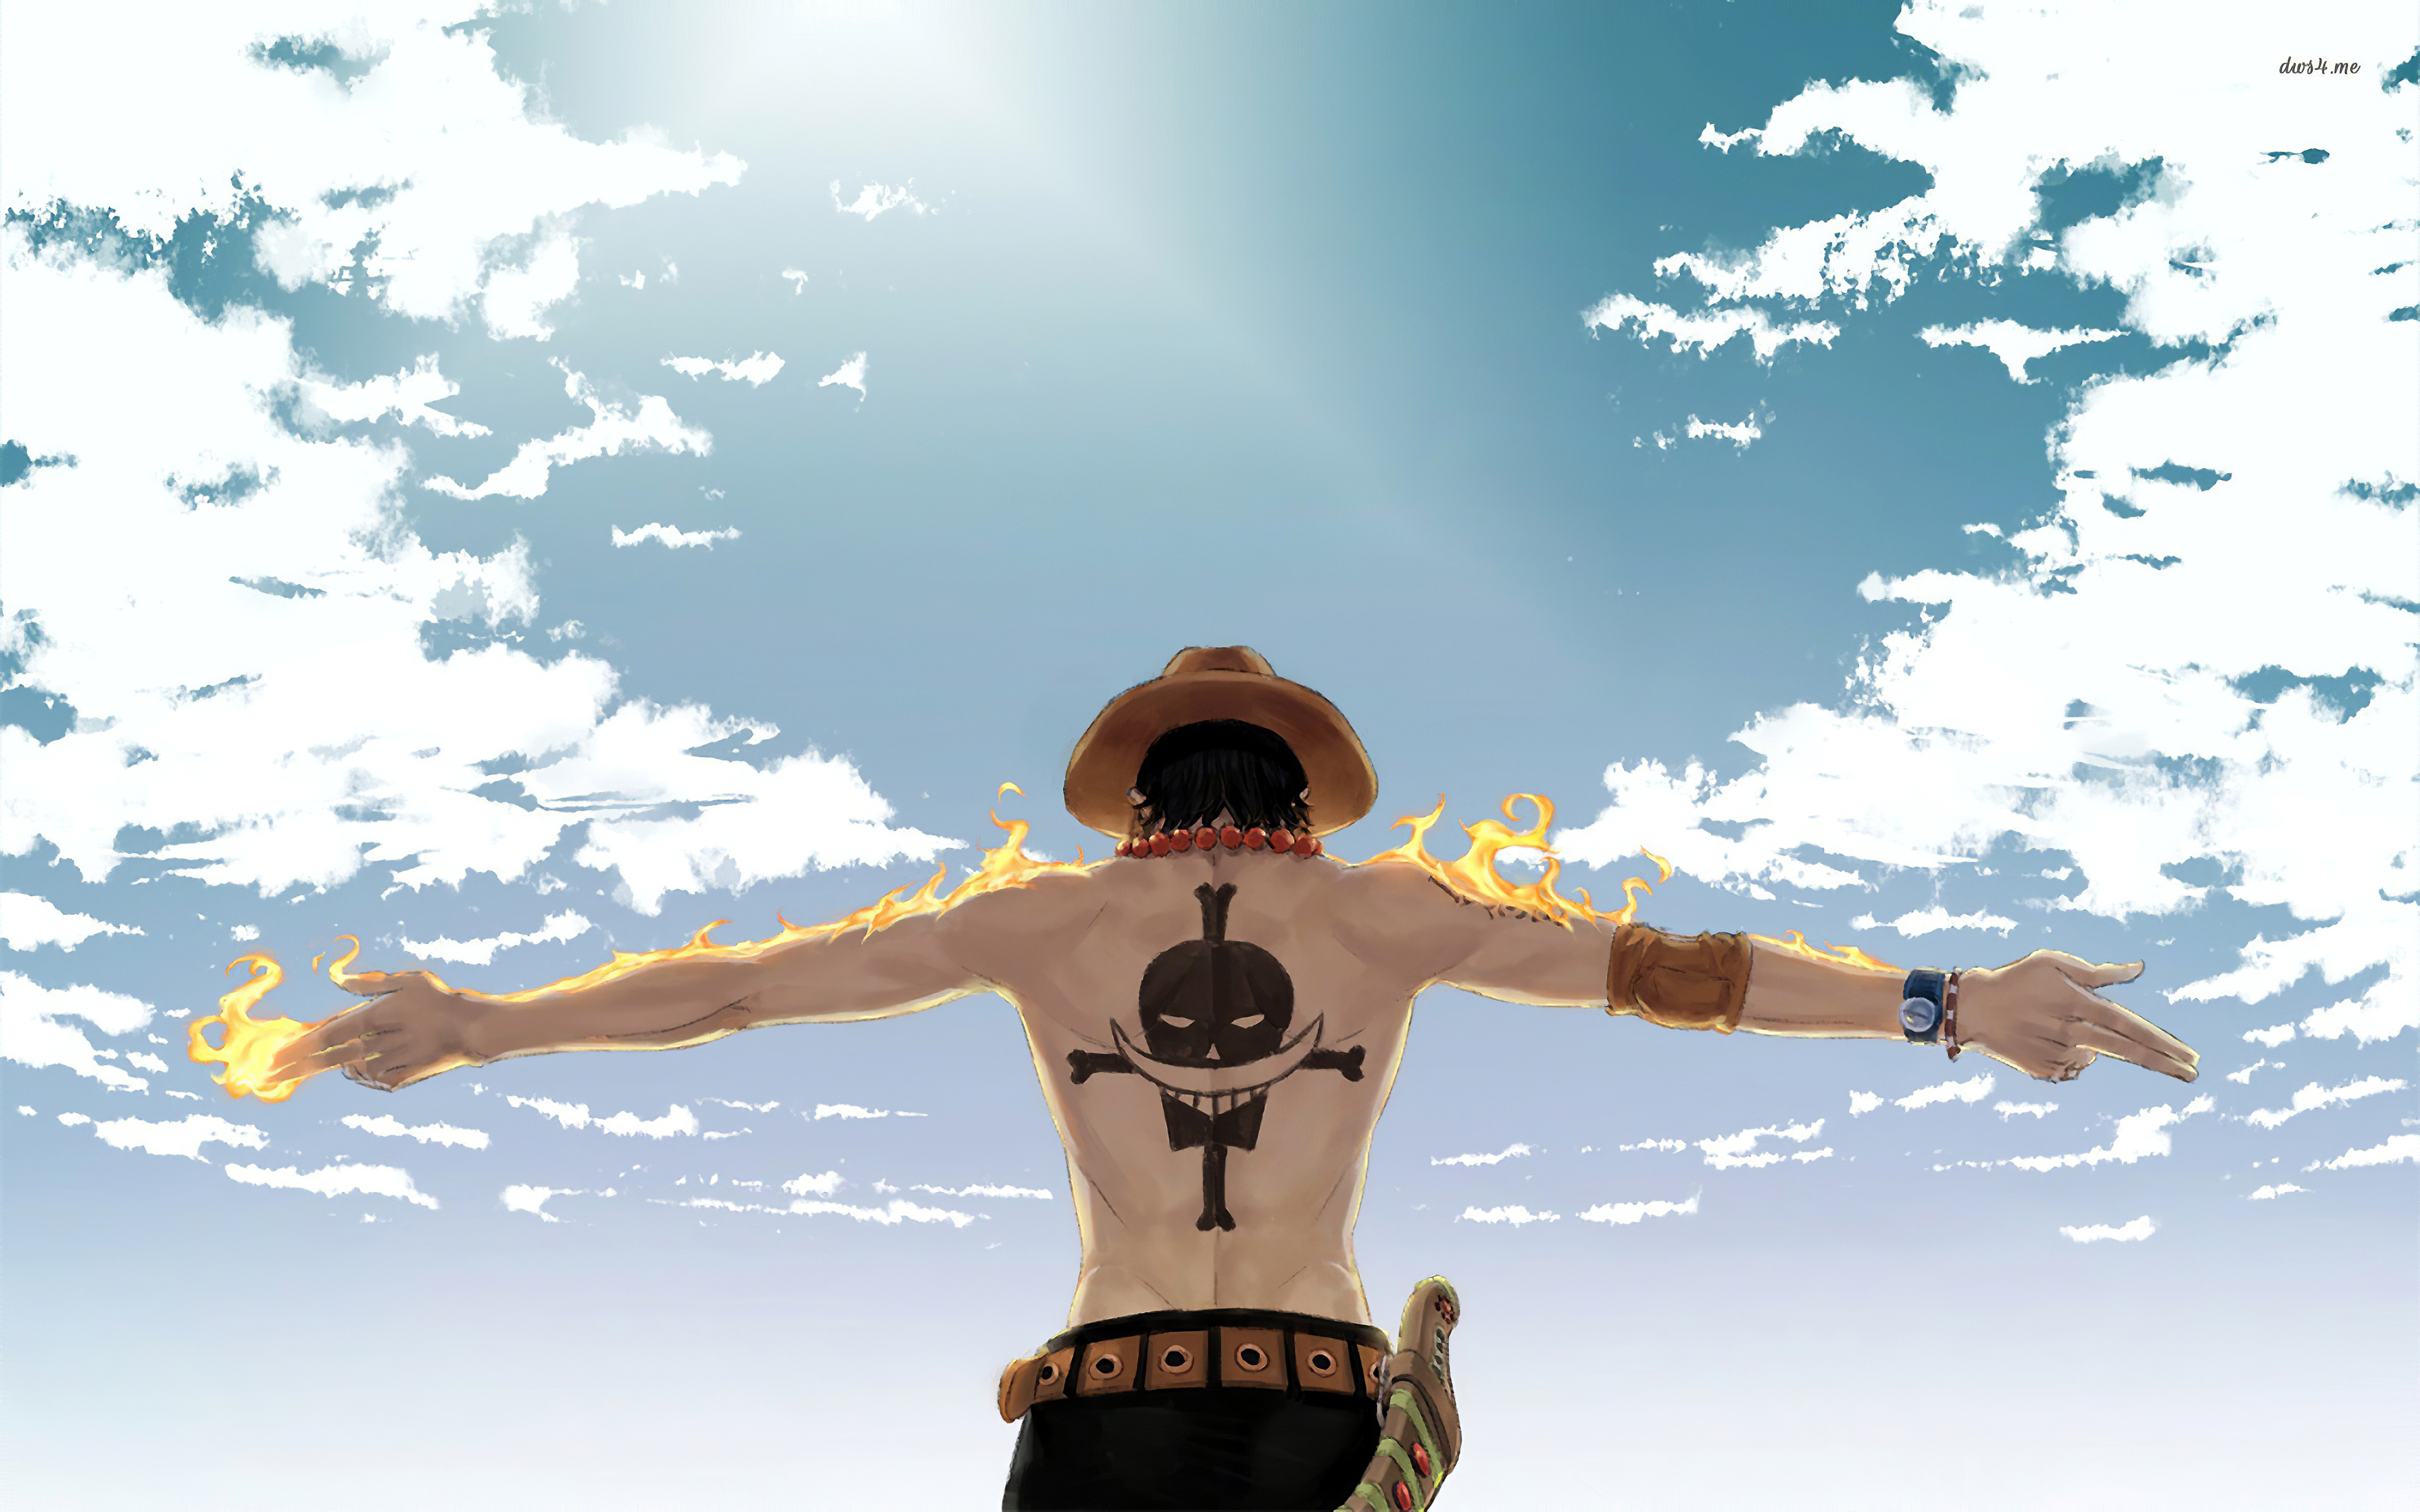 One Piece 4k Hd Anime 4k Wallpapers Images Backgrounds Photos And Pictures